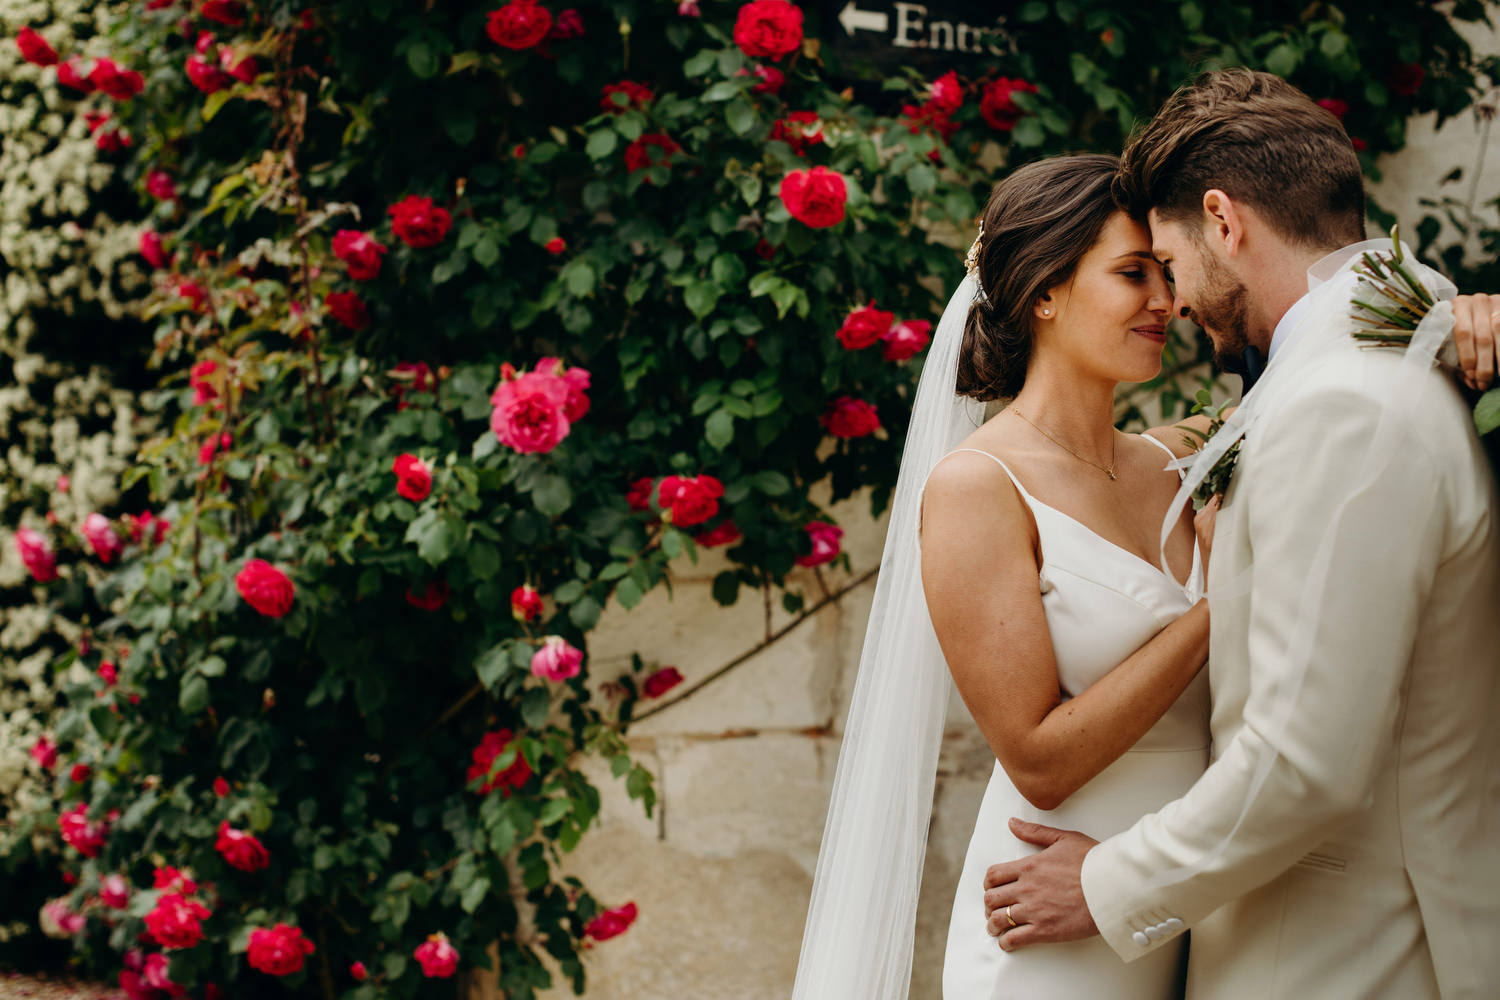 bride and groom pose with roses in background